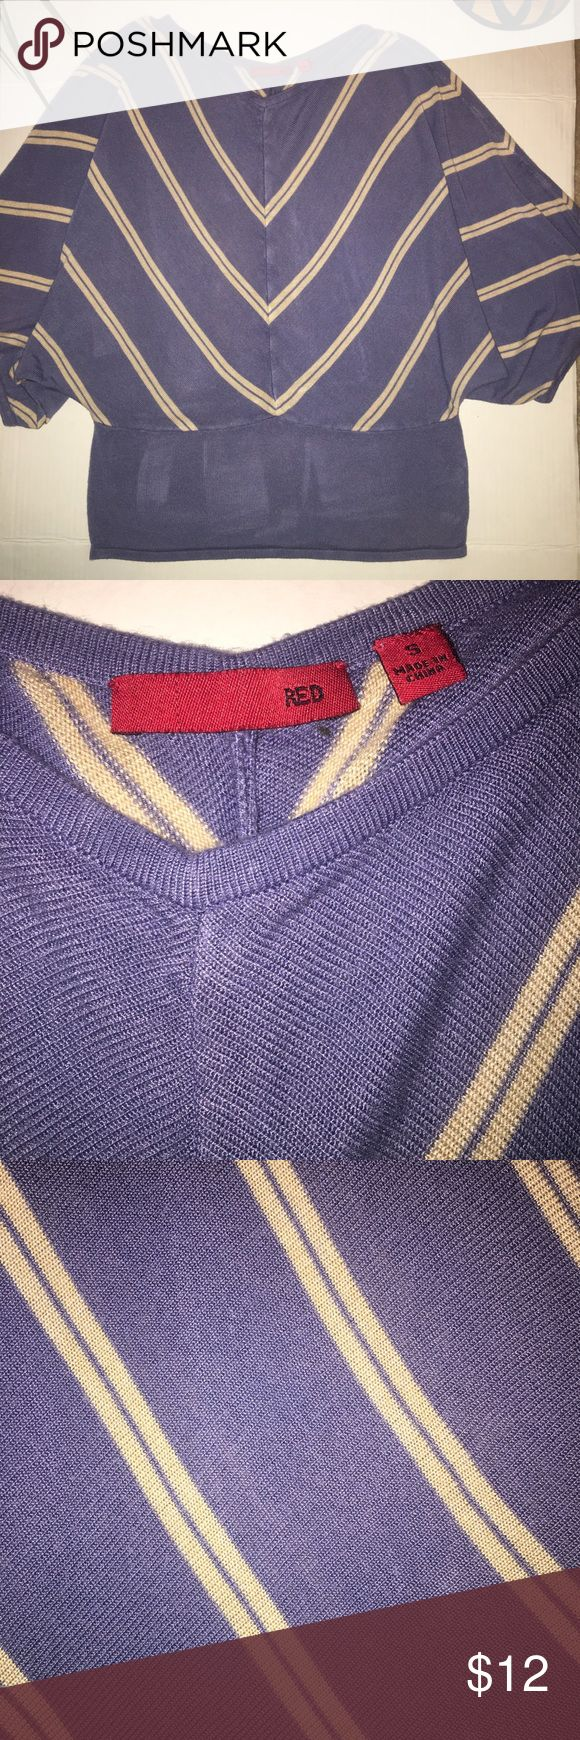 """Red Women's Striped Batwing Dolman Sleeve Top, S Brand: Red Style: Batwing Condition: Good Used Condition; No rips, tears, stains, or holes. Please review photos and measurements for best judgment on the condition of this item. Size: Small (2/4) Approximate Measurements: Chest (armpit-to-armpit)- 17""""(Total- 34""""); Length (collar seam-to-end)- 19.5""""; Sleeves- 8"""" (Batwing; short sleeve) Color: Periwinkle Blue with Beige Stripes Materials: 100% VIscose Made in China RED Tops Blouses"""